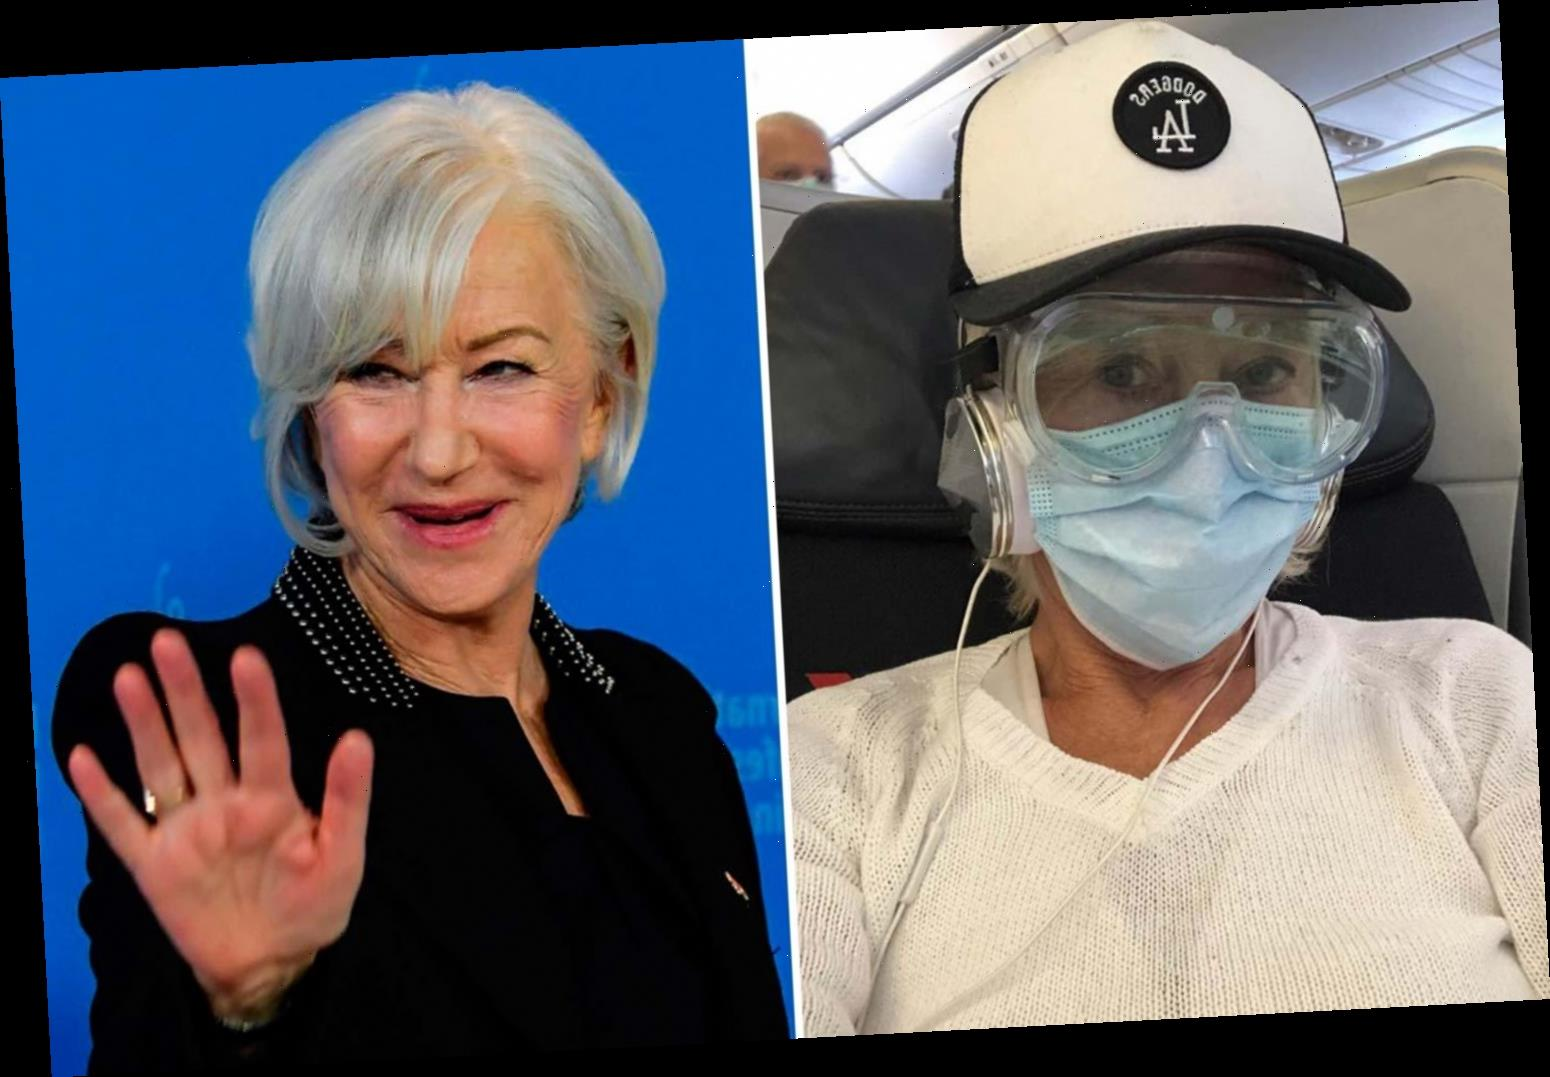 Dame Helen Mirren takes no chances as she boards a flight in safety goggles and a surgical mask